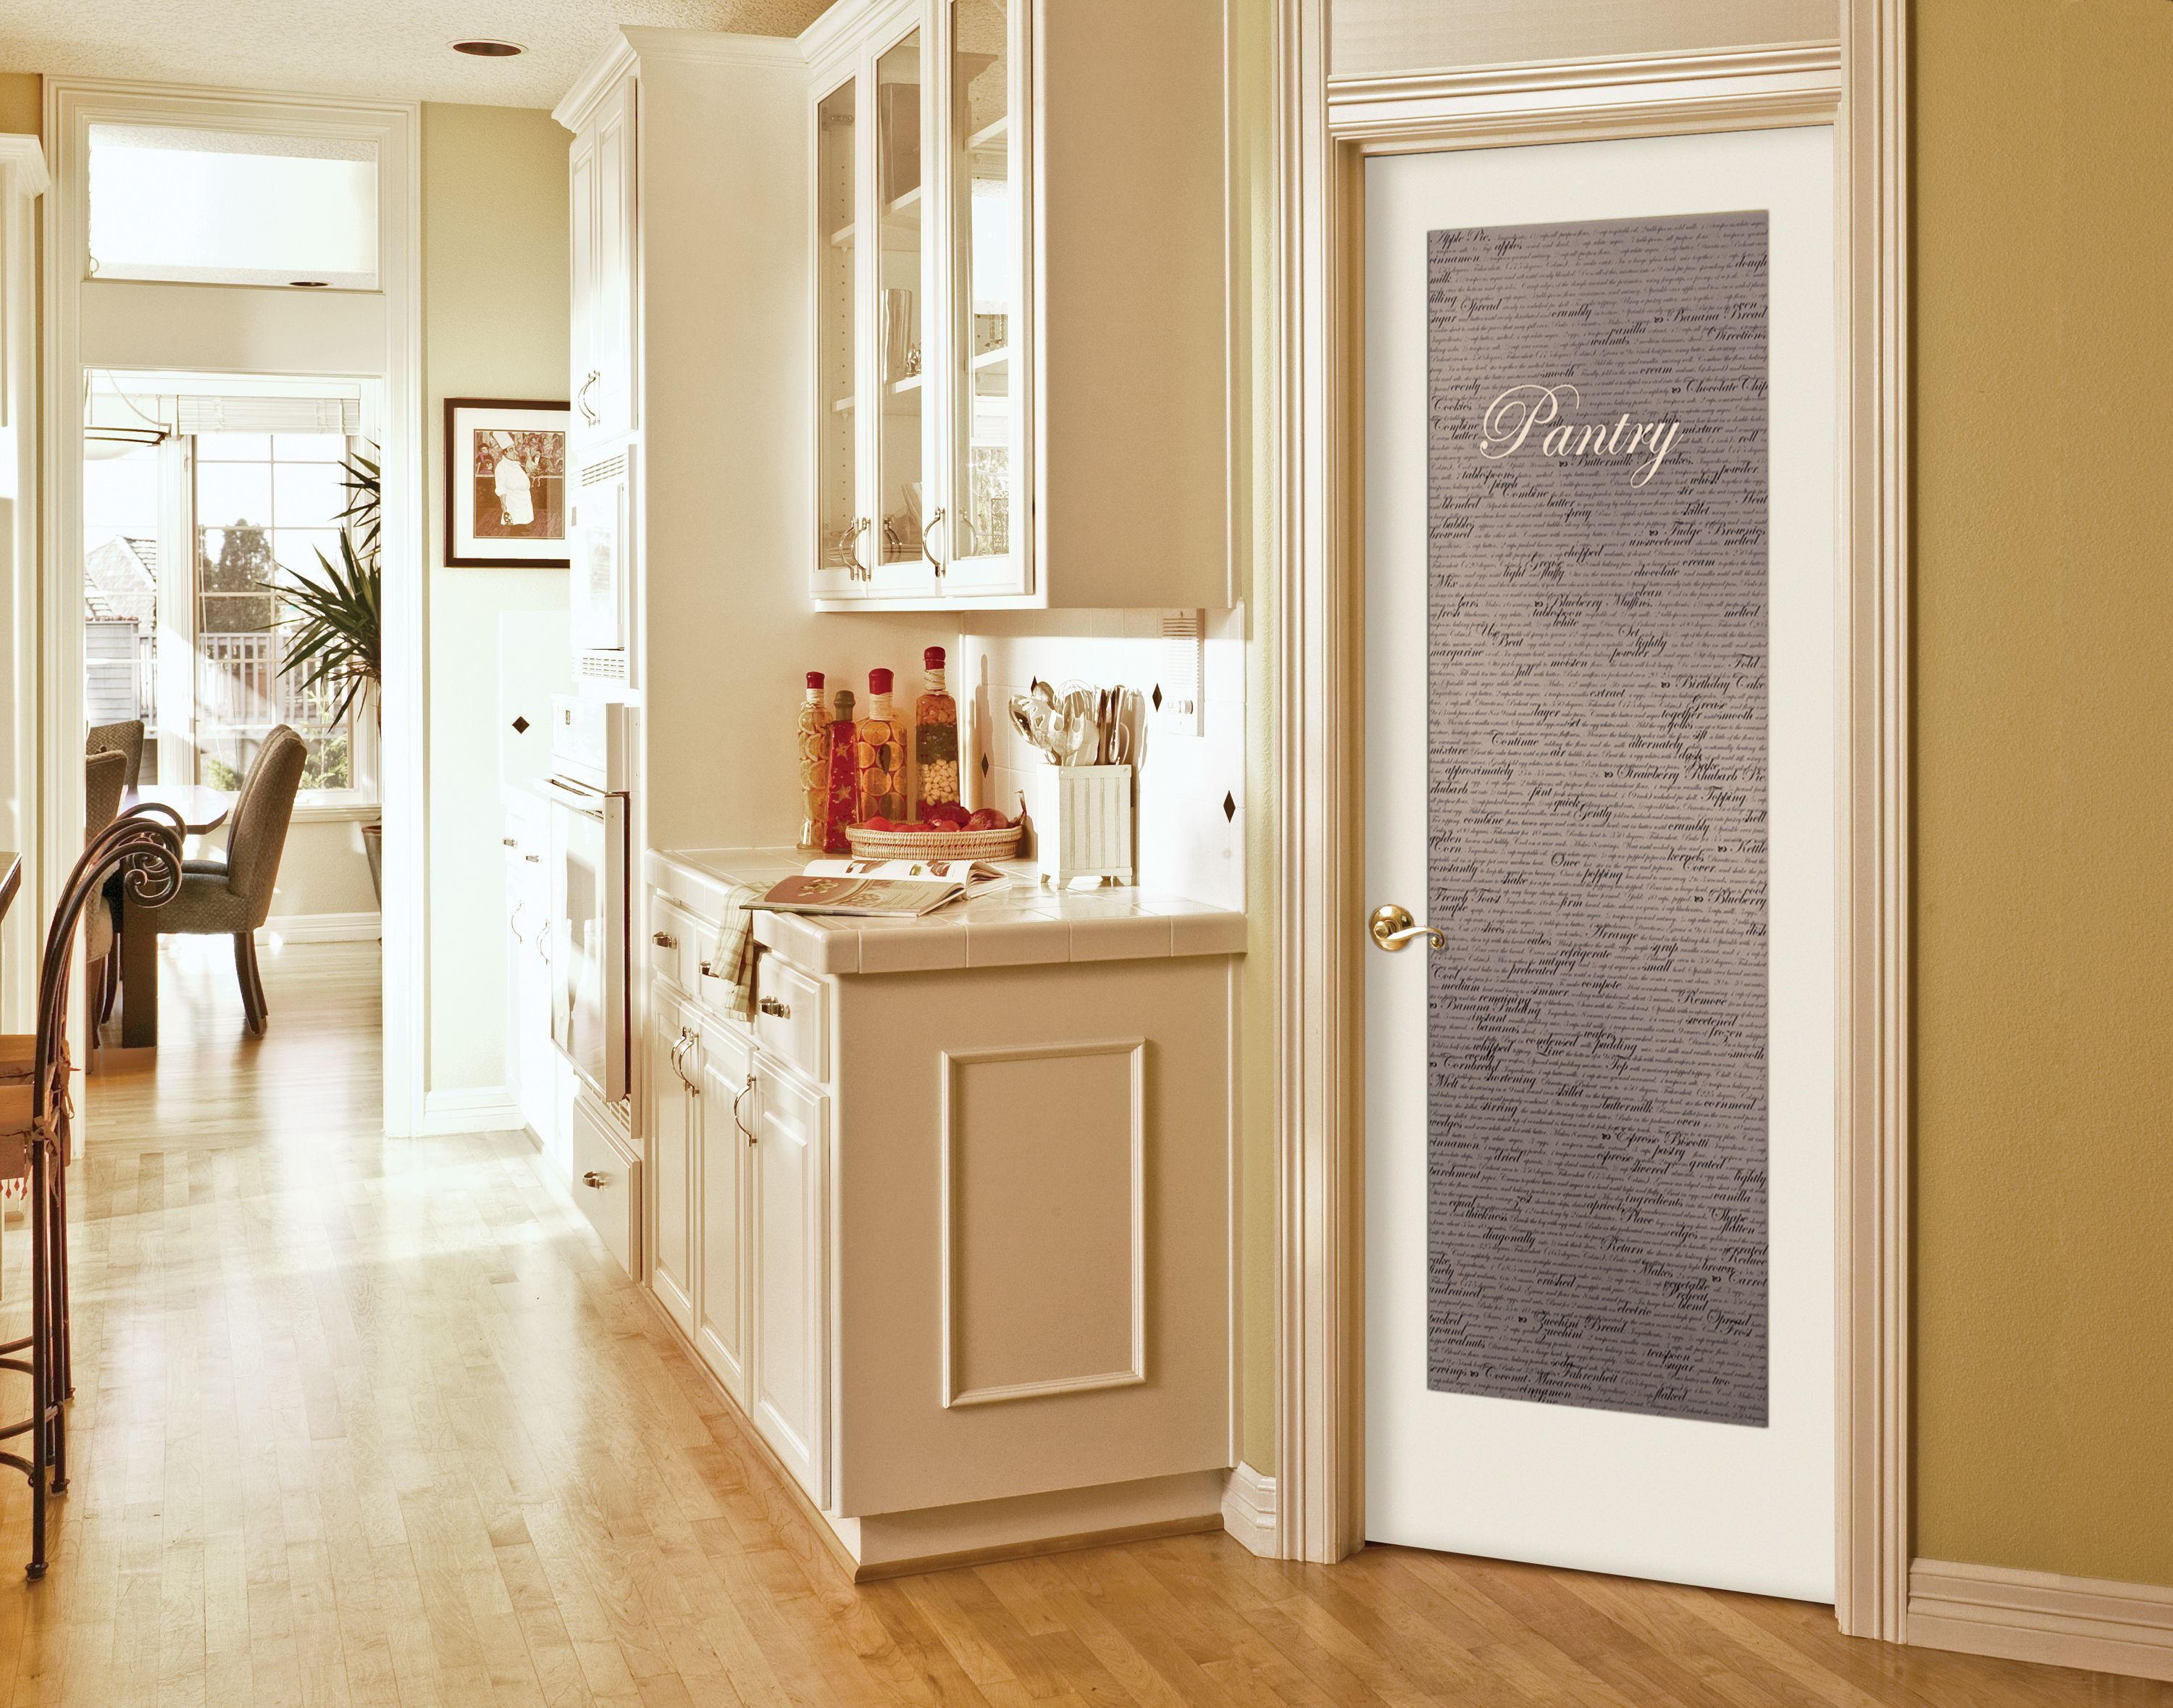 Charmant Cool Single Swing White Frozzen Pantry Door With Wooden Glass Door Kitchen  Cabinetry In Midcentury Kitchen